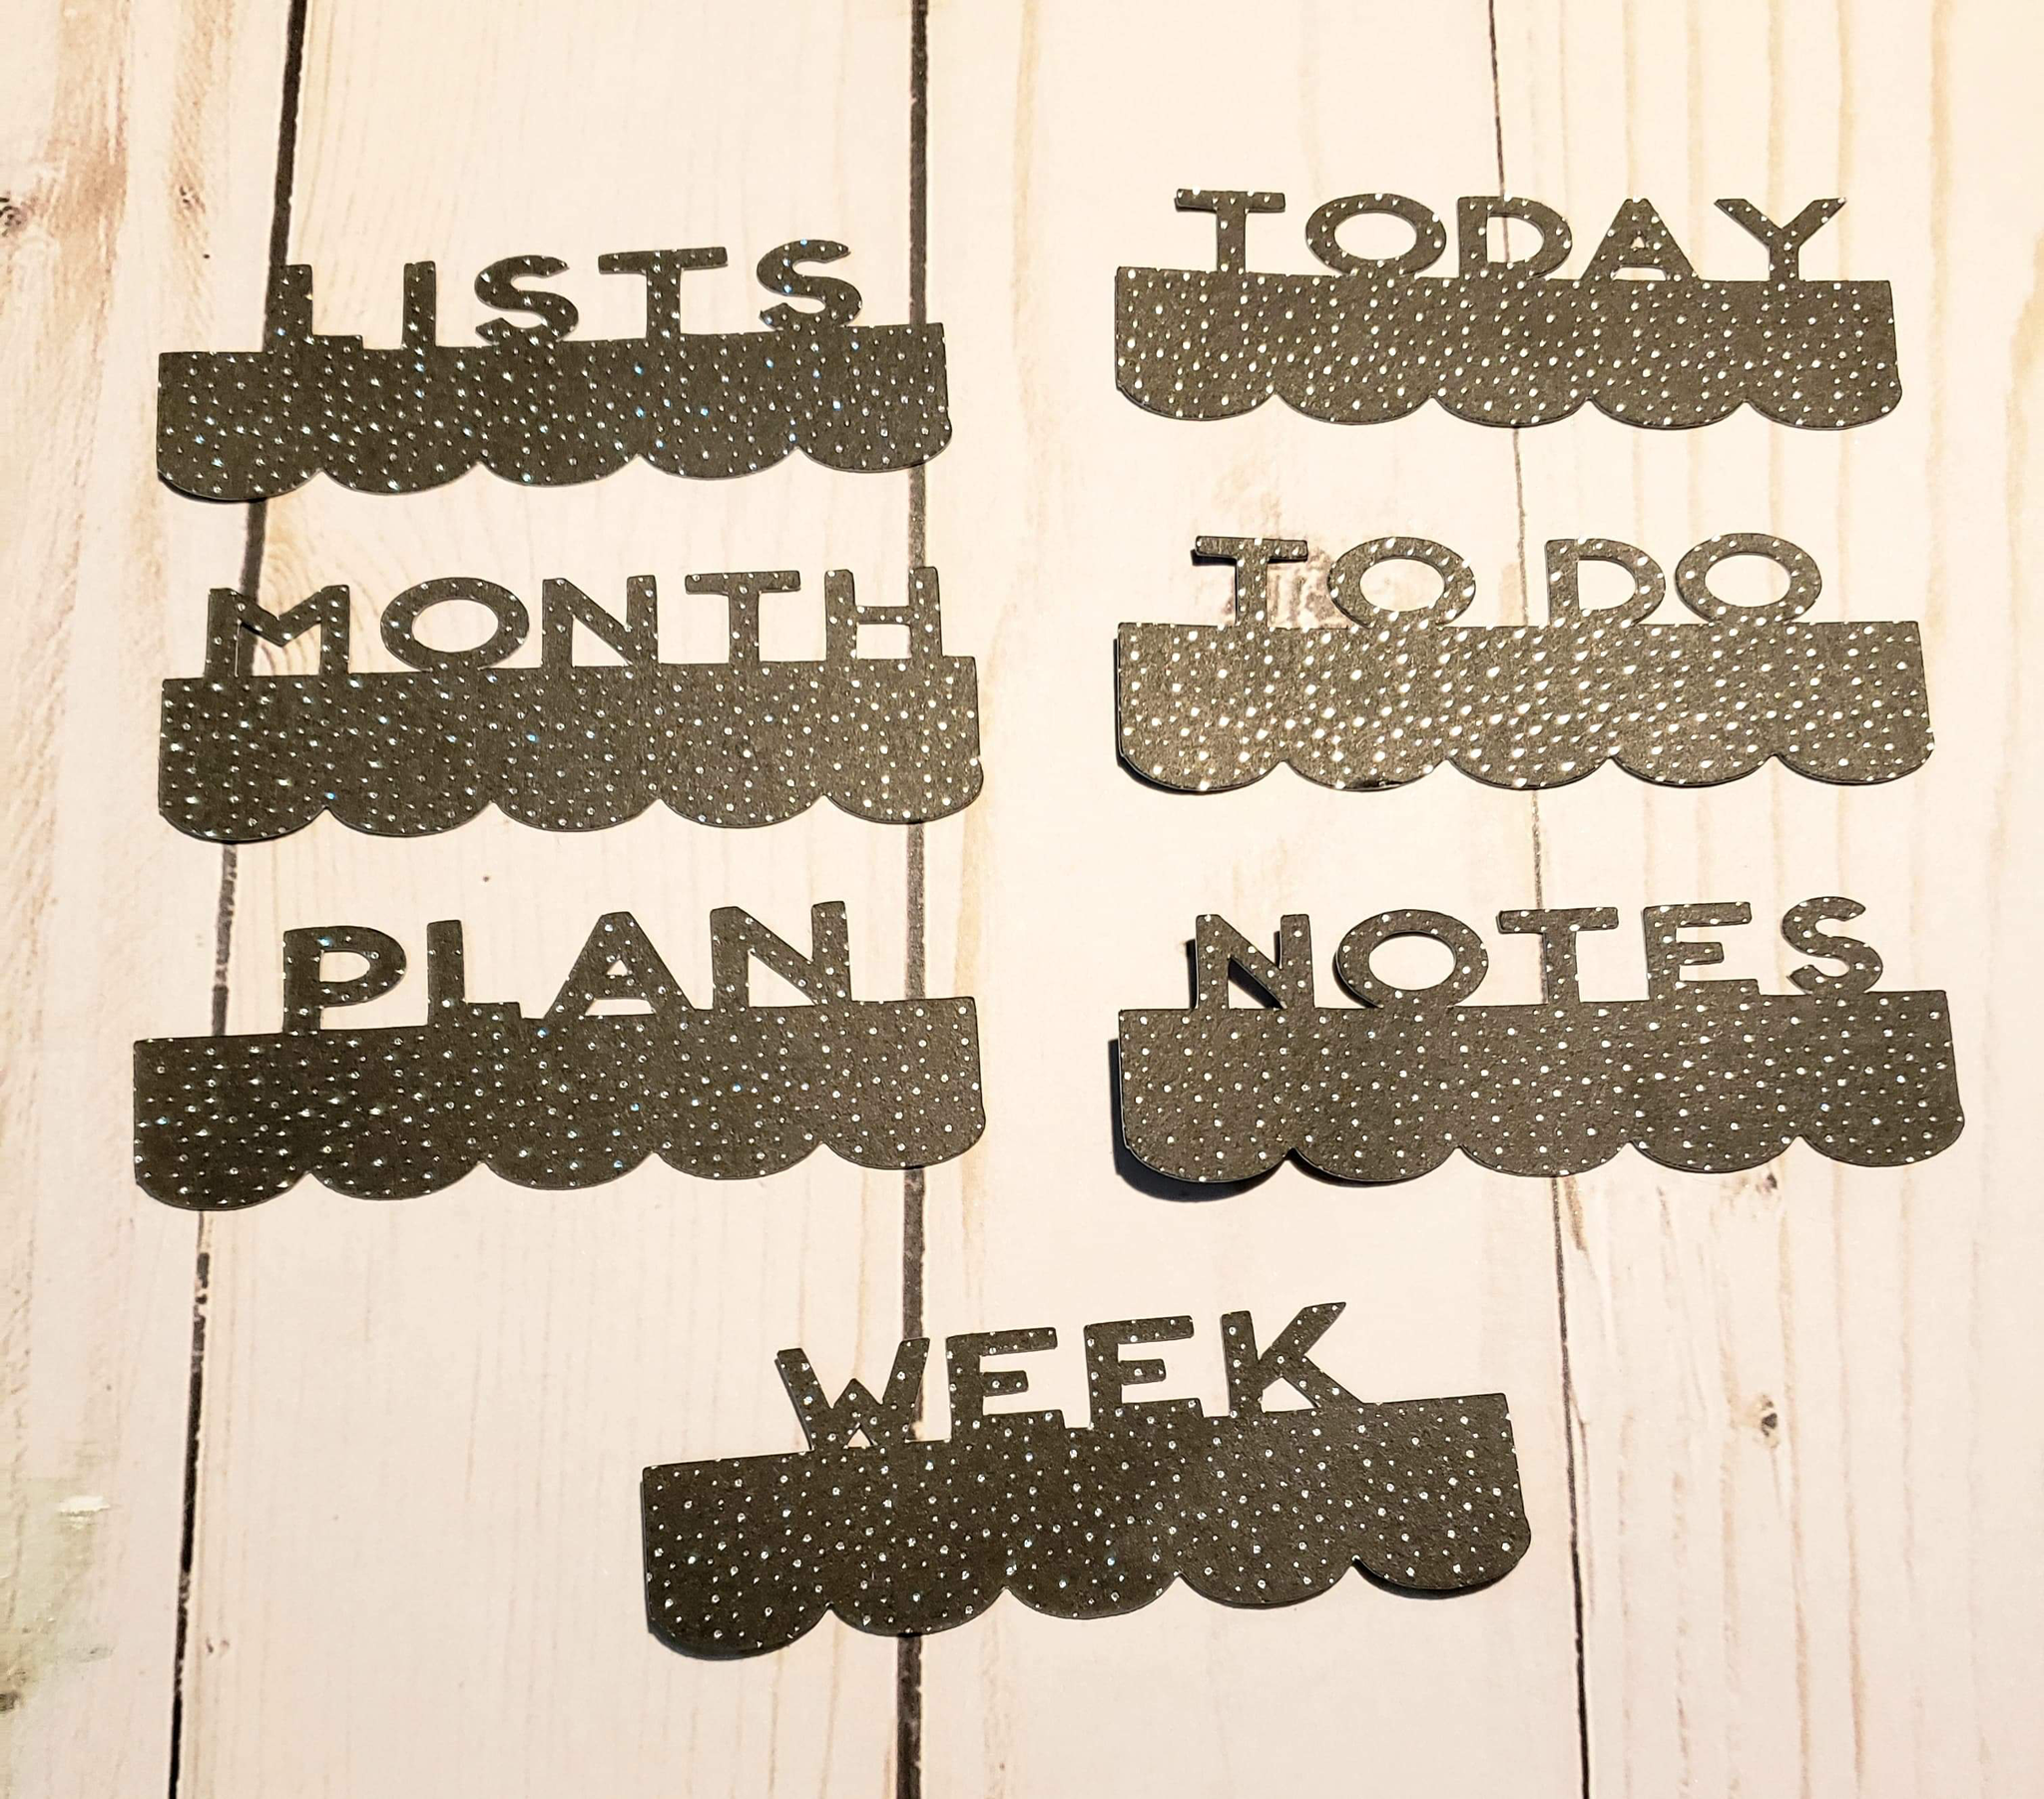 Page Toppers / Word Toppers / Page Marker or Dashboards Toppers / Word Tabs / Set of 7 Toppers / Black with Holo Dots